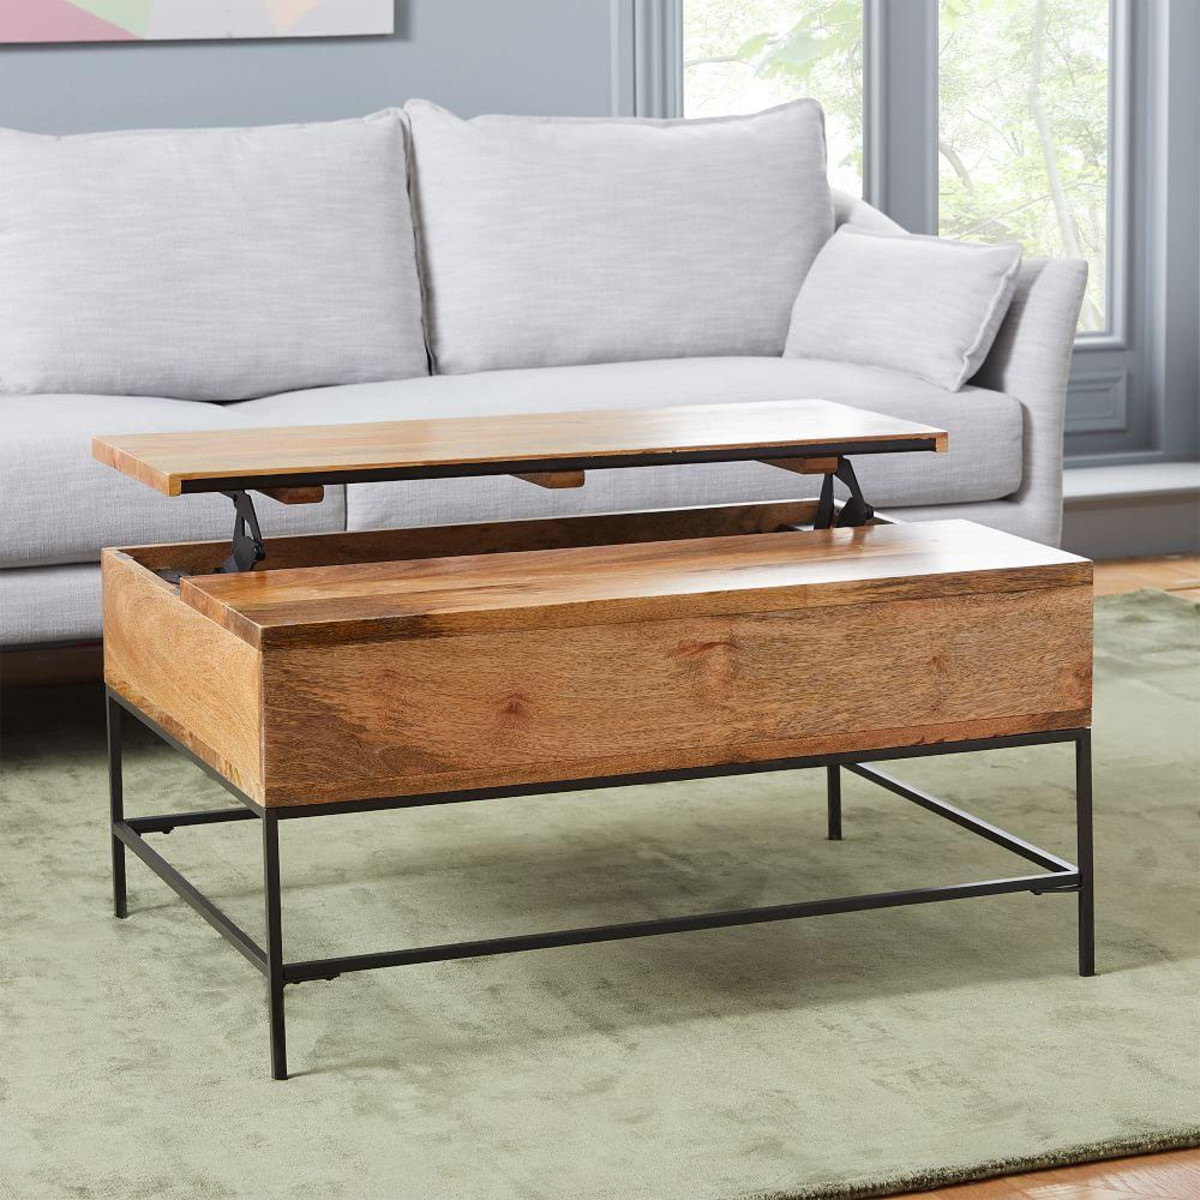 Best ideas about Coffee Table With Storage . Save or Pin Industrial Storage Coffee Table Small 91 cm Now.